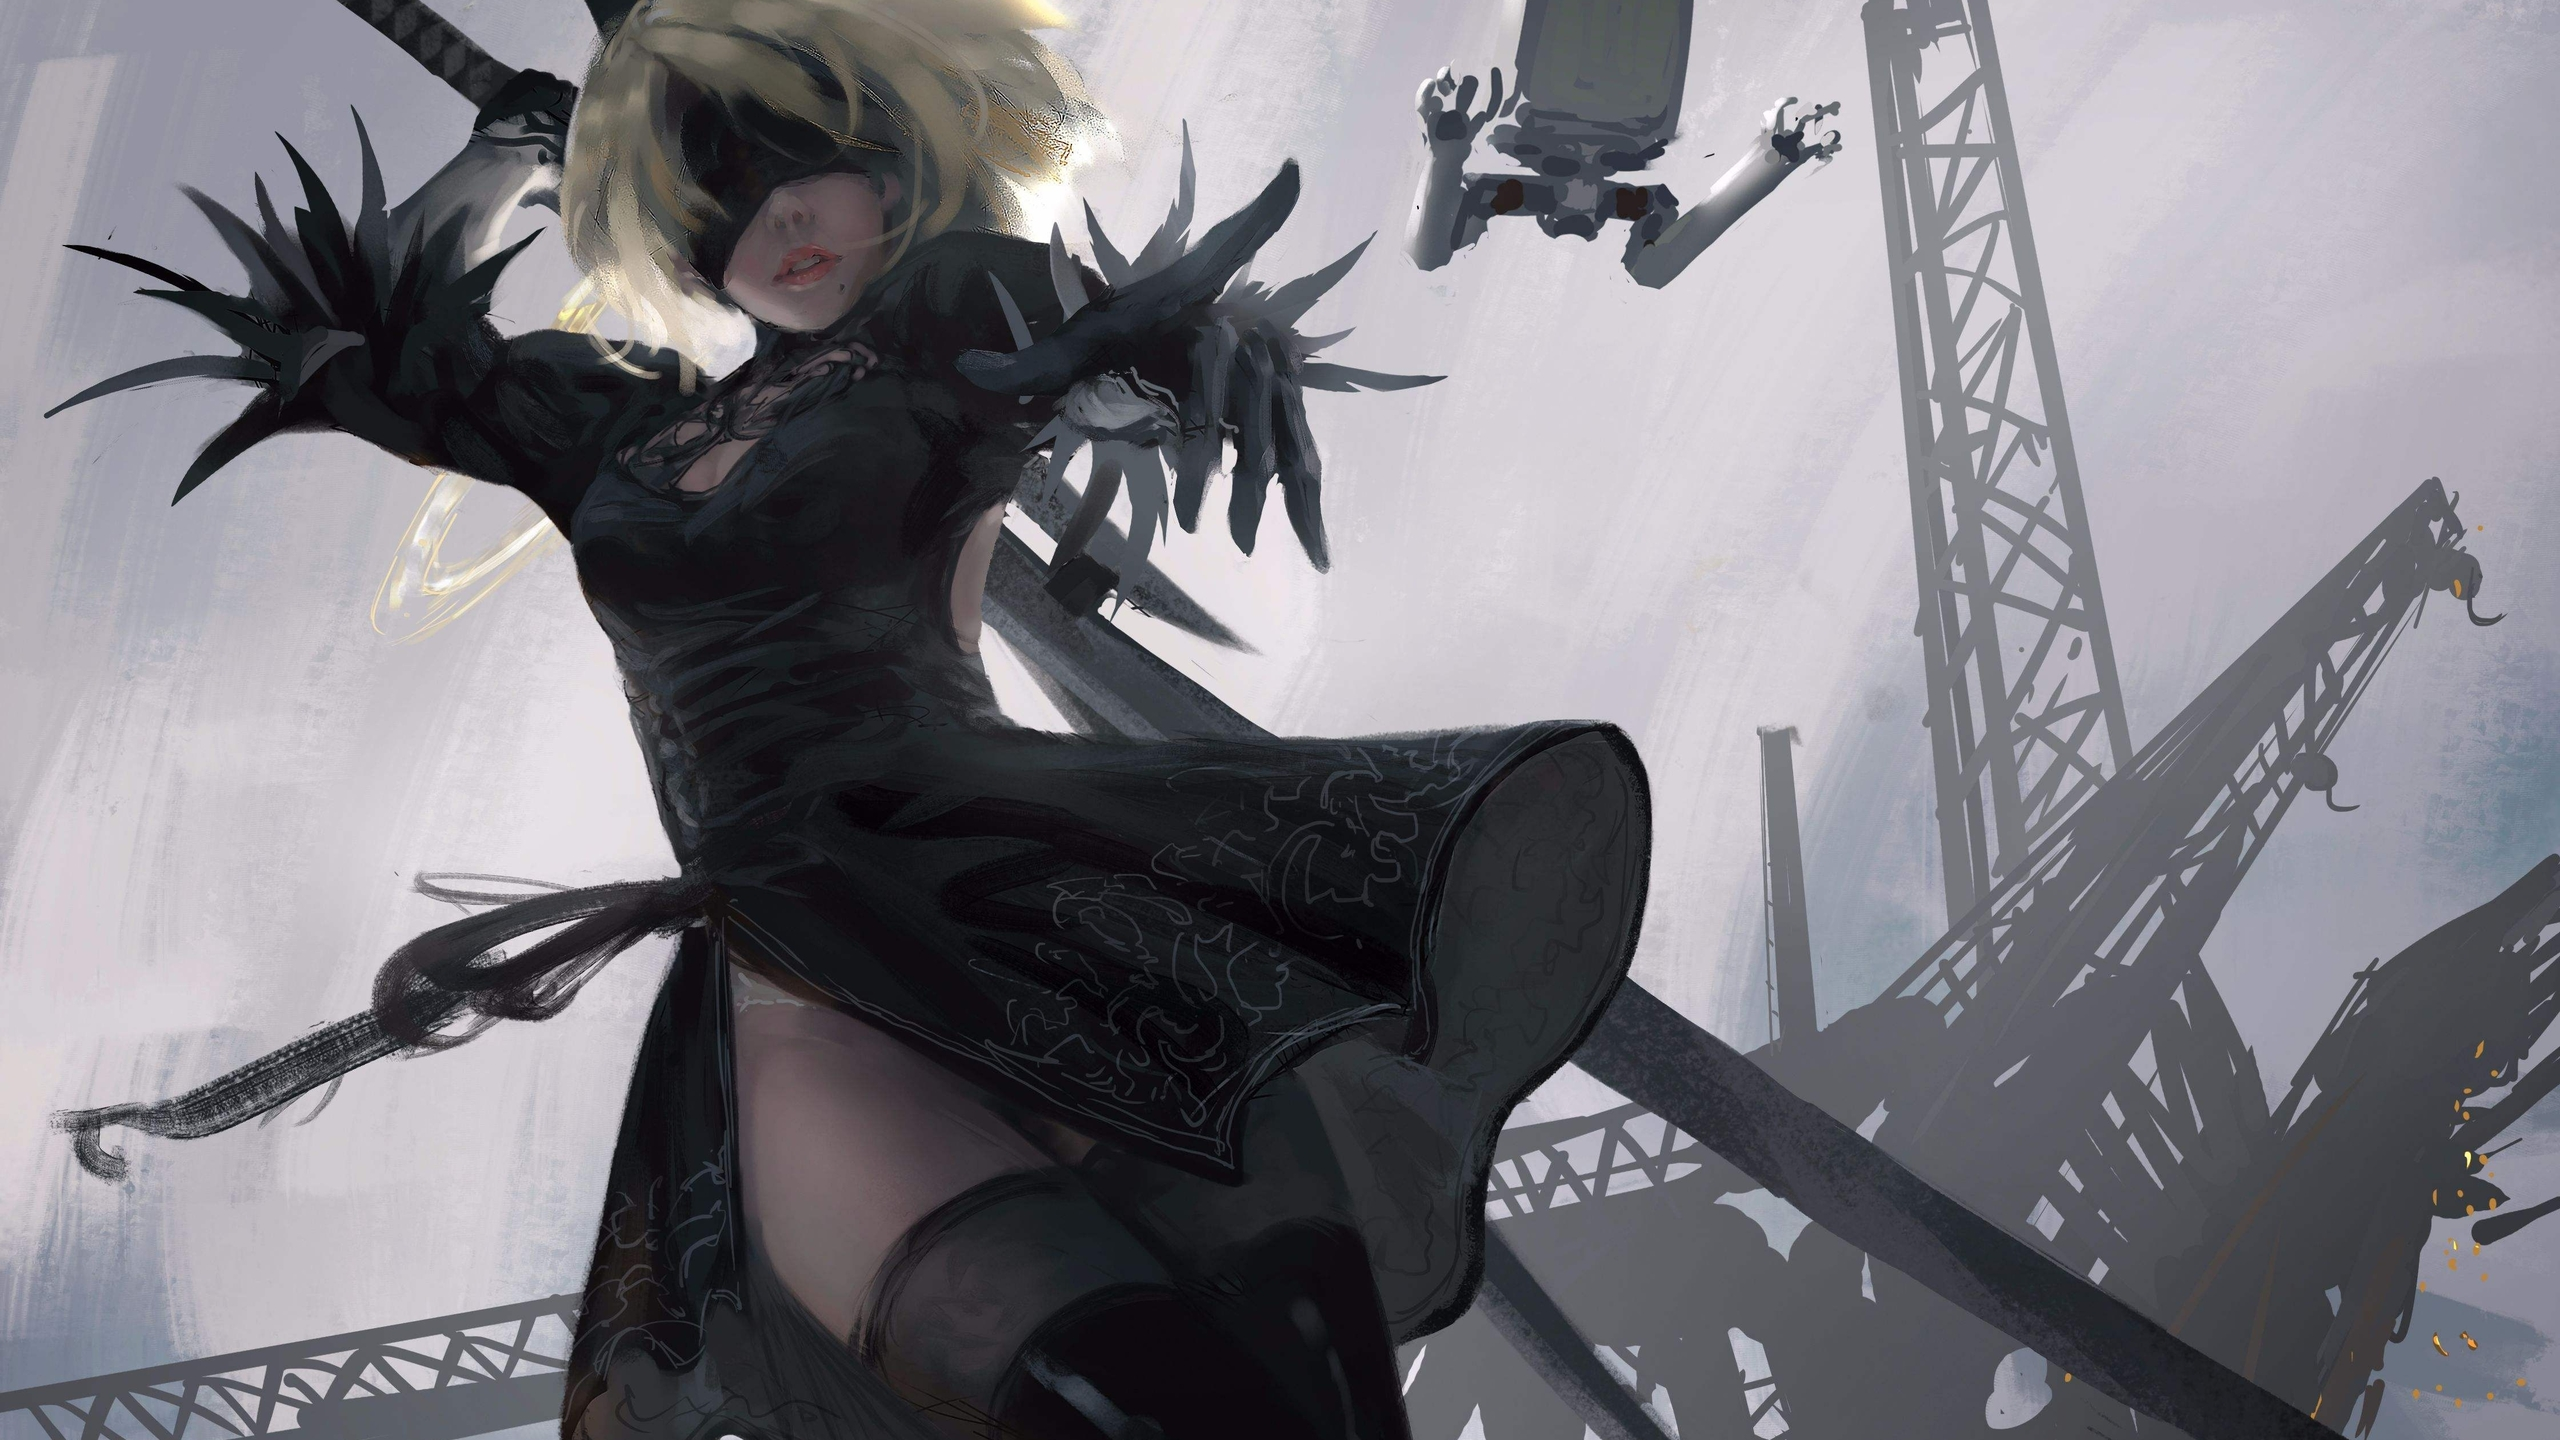 Nier Automata Fantasy Game Art Full Hd Wallpaper: 2560x1440 2b Nier Automata 4k 1440P Resolution HD 4k